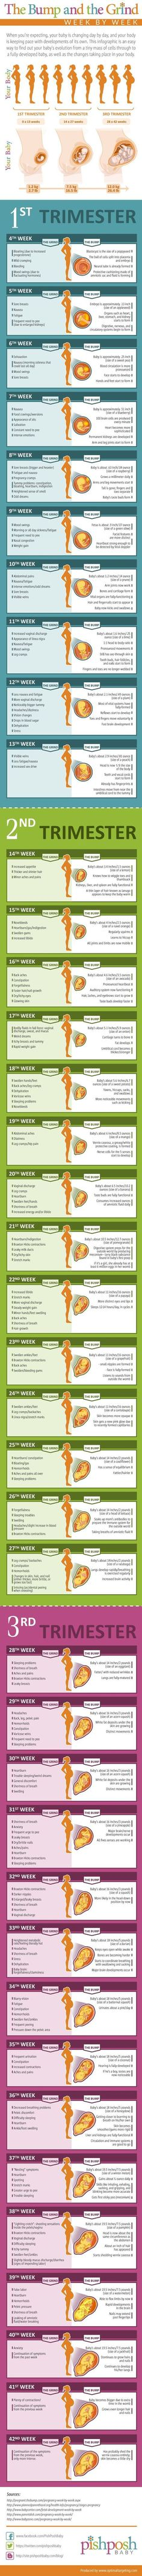 Pregnancy Week by Week Chart: